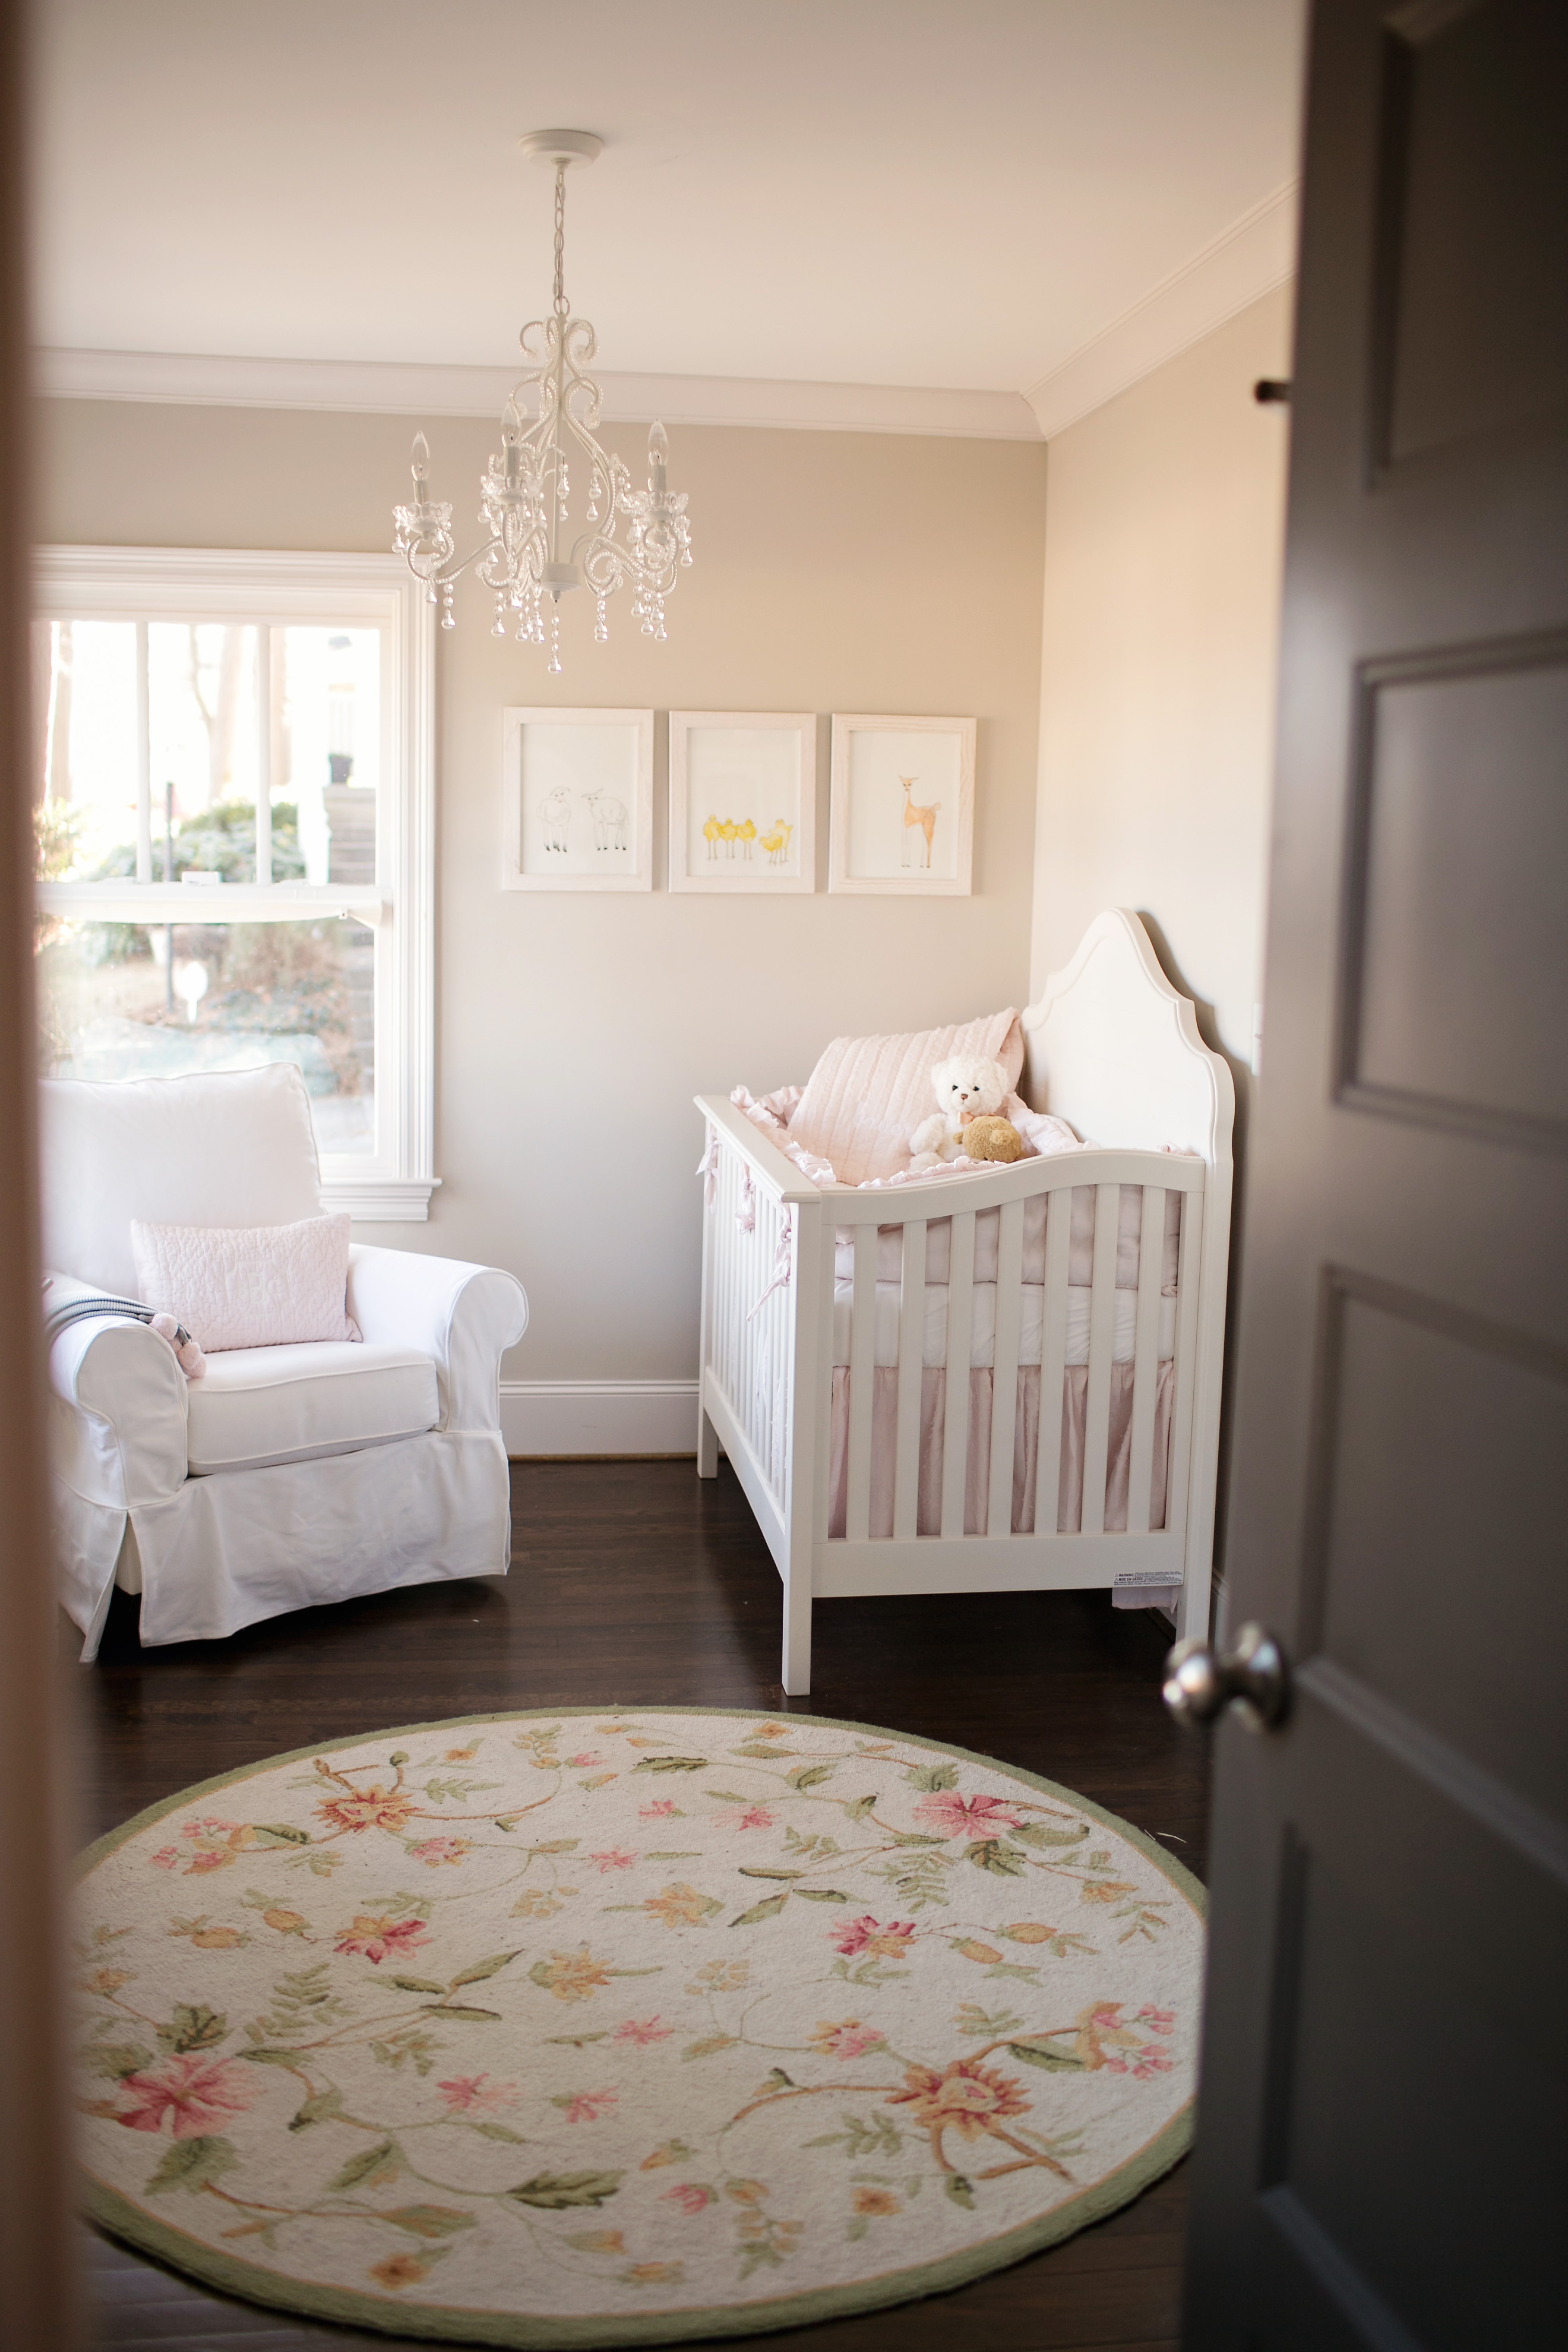 Meisjes Babykamer Designing For A Brand New Baby In A Brand New Space